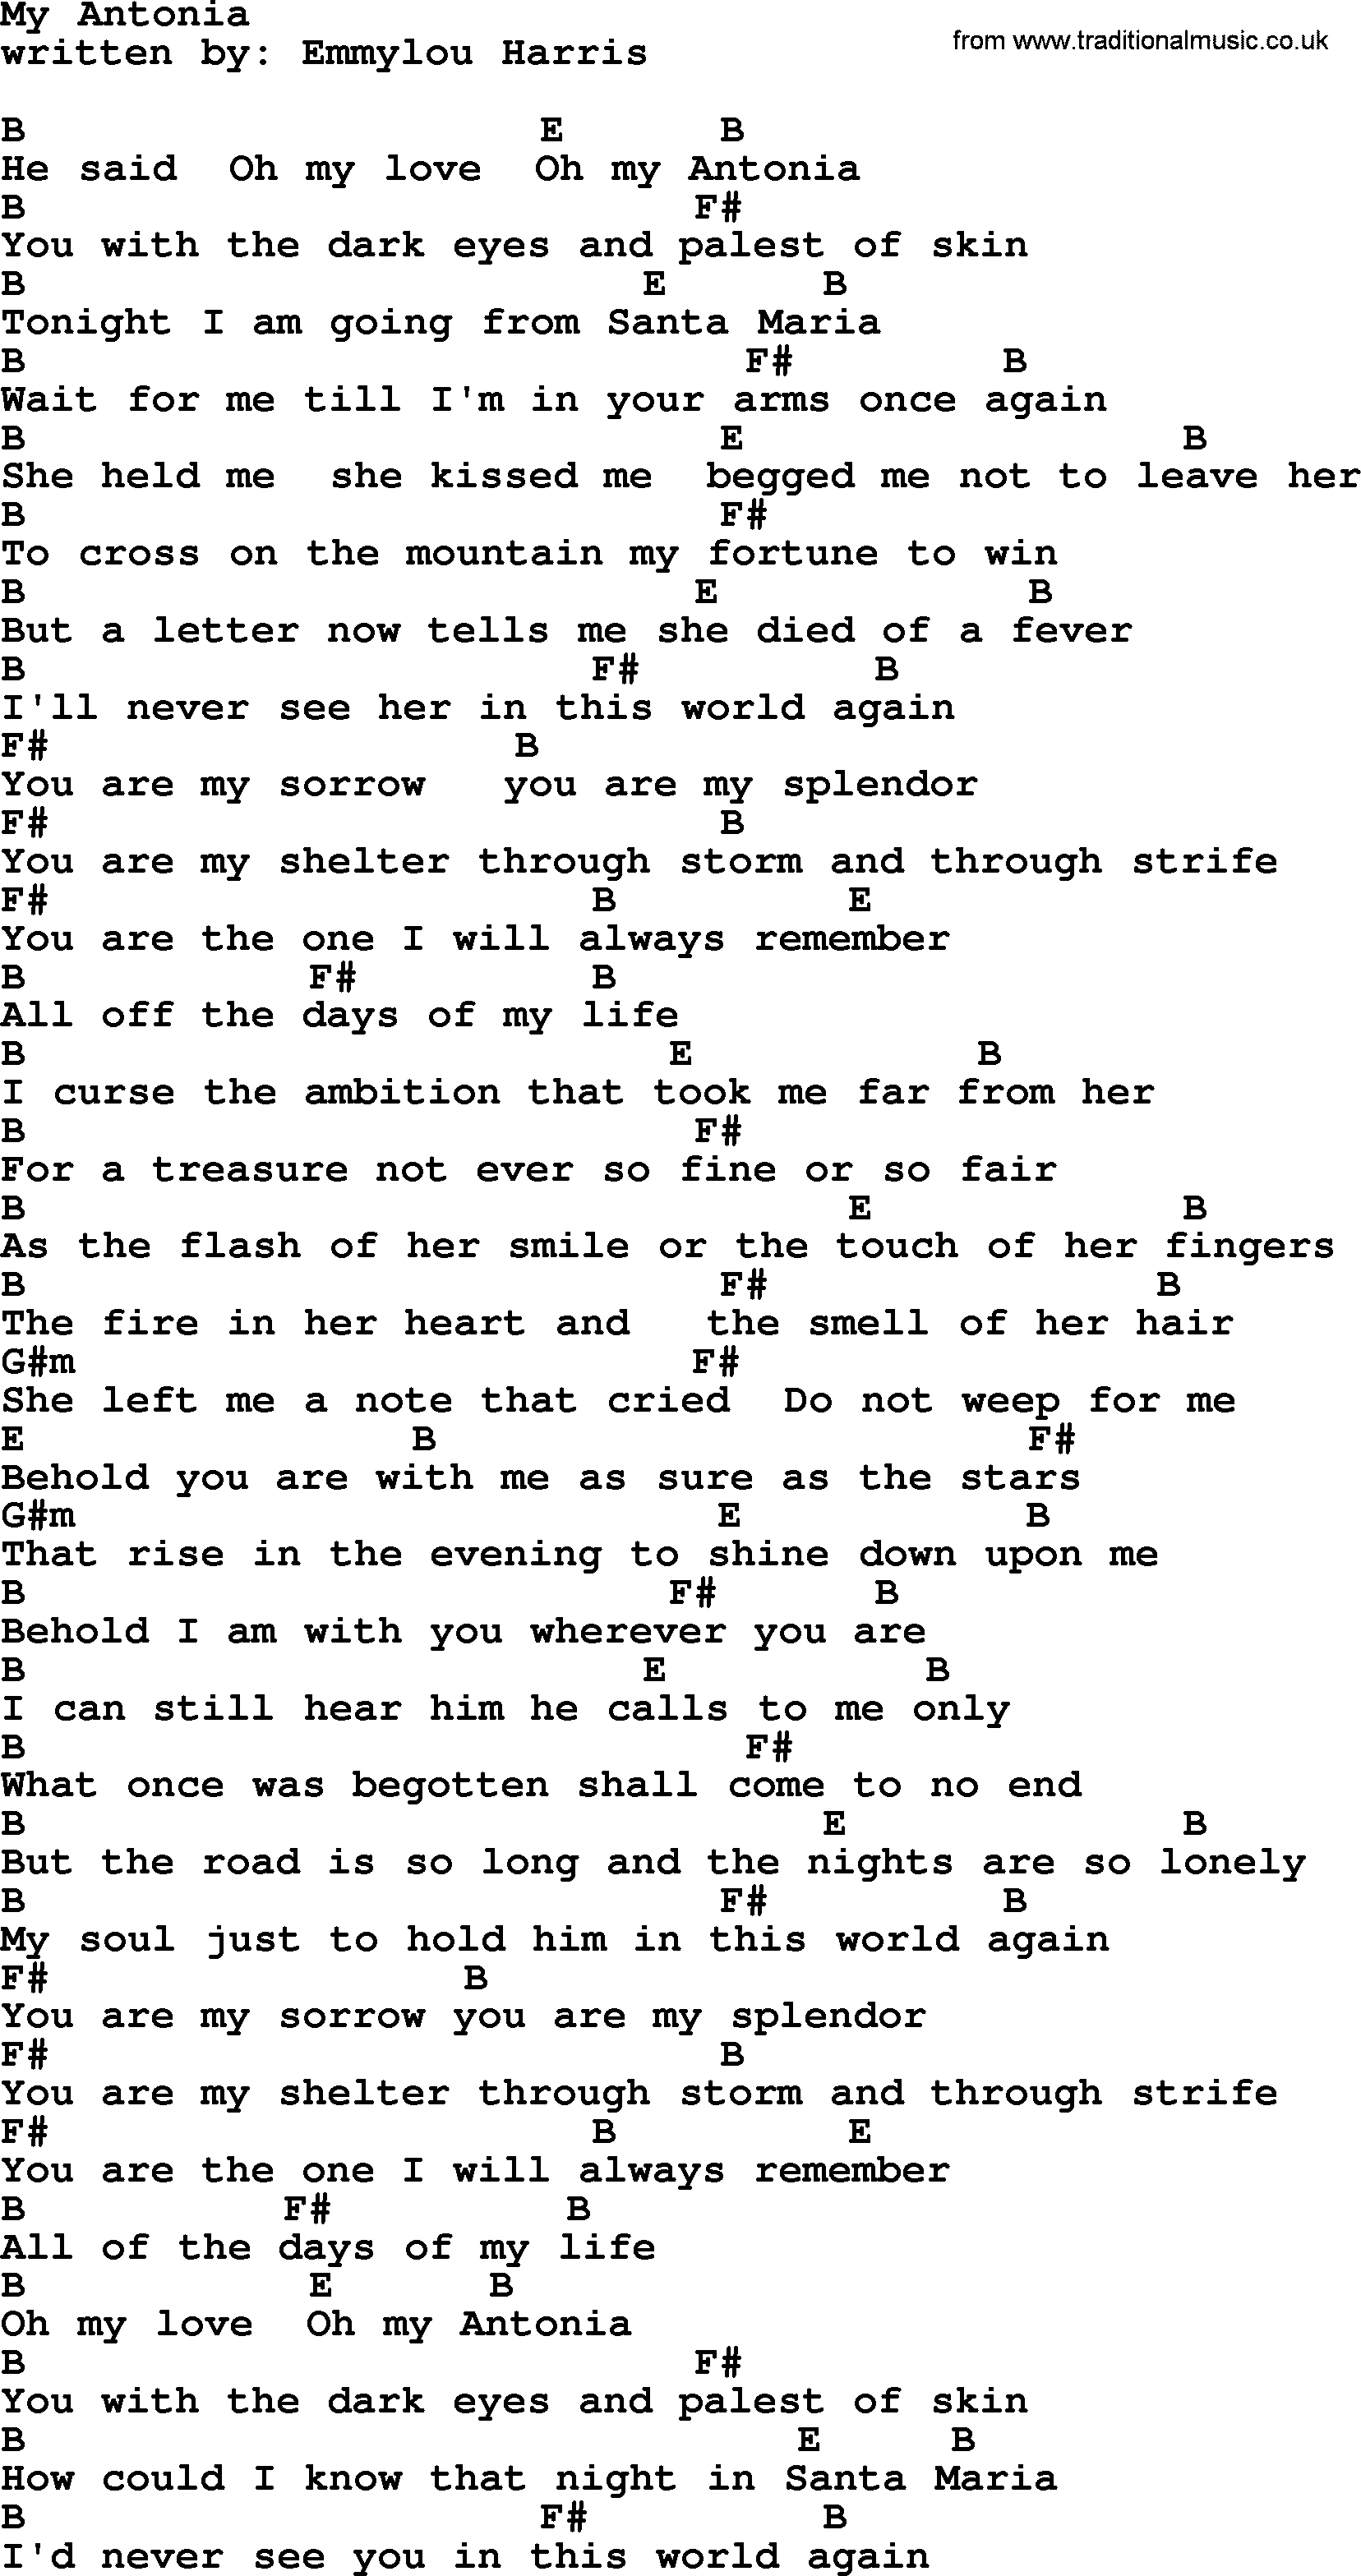 Emmylou Harris Song My Antonia Lyrics And Chords